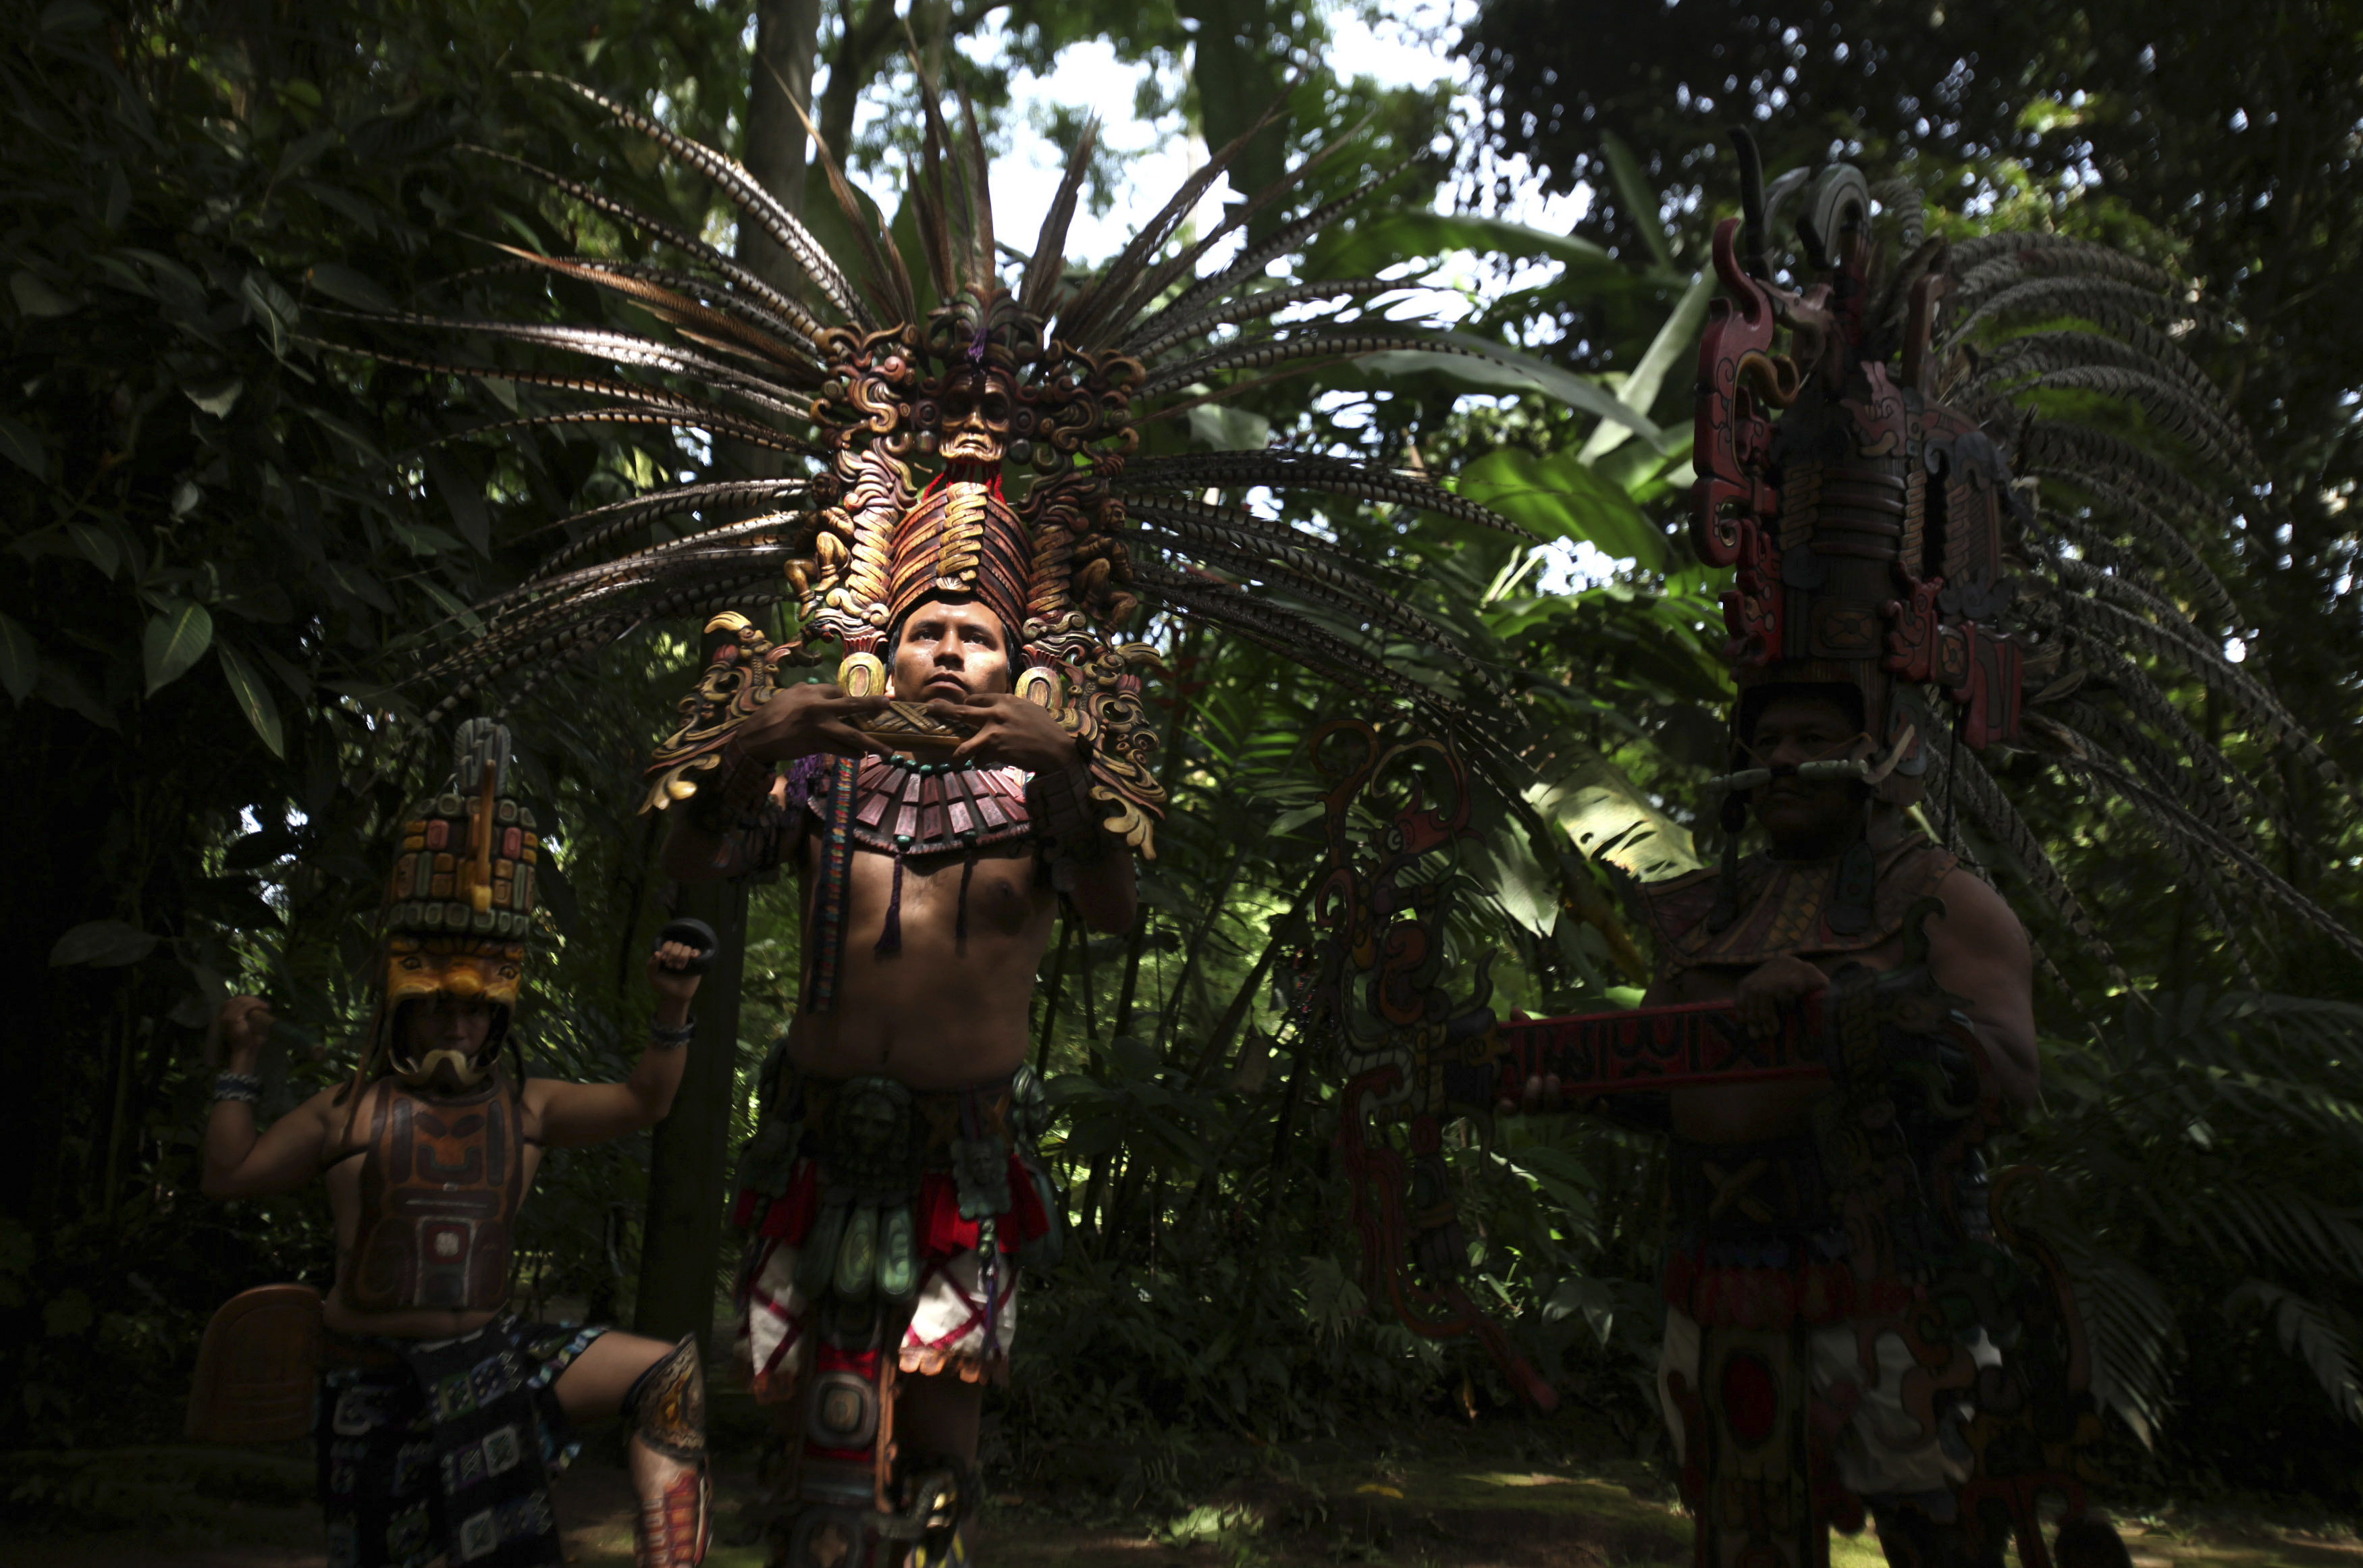 Performers participate in a pre-hispanic dance to celebrate the beginning of the Summer Solstice during the inauguration of a museum at the archaeological site of Tak'Alik A'Baj in Retalhuleu, some 124 miles from Guatemala City on June 21, 2012.